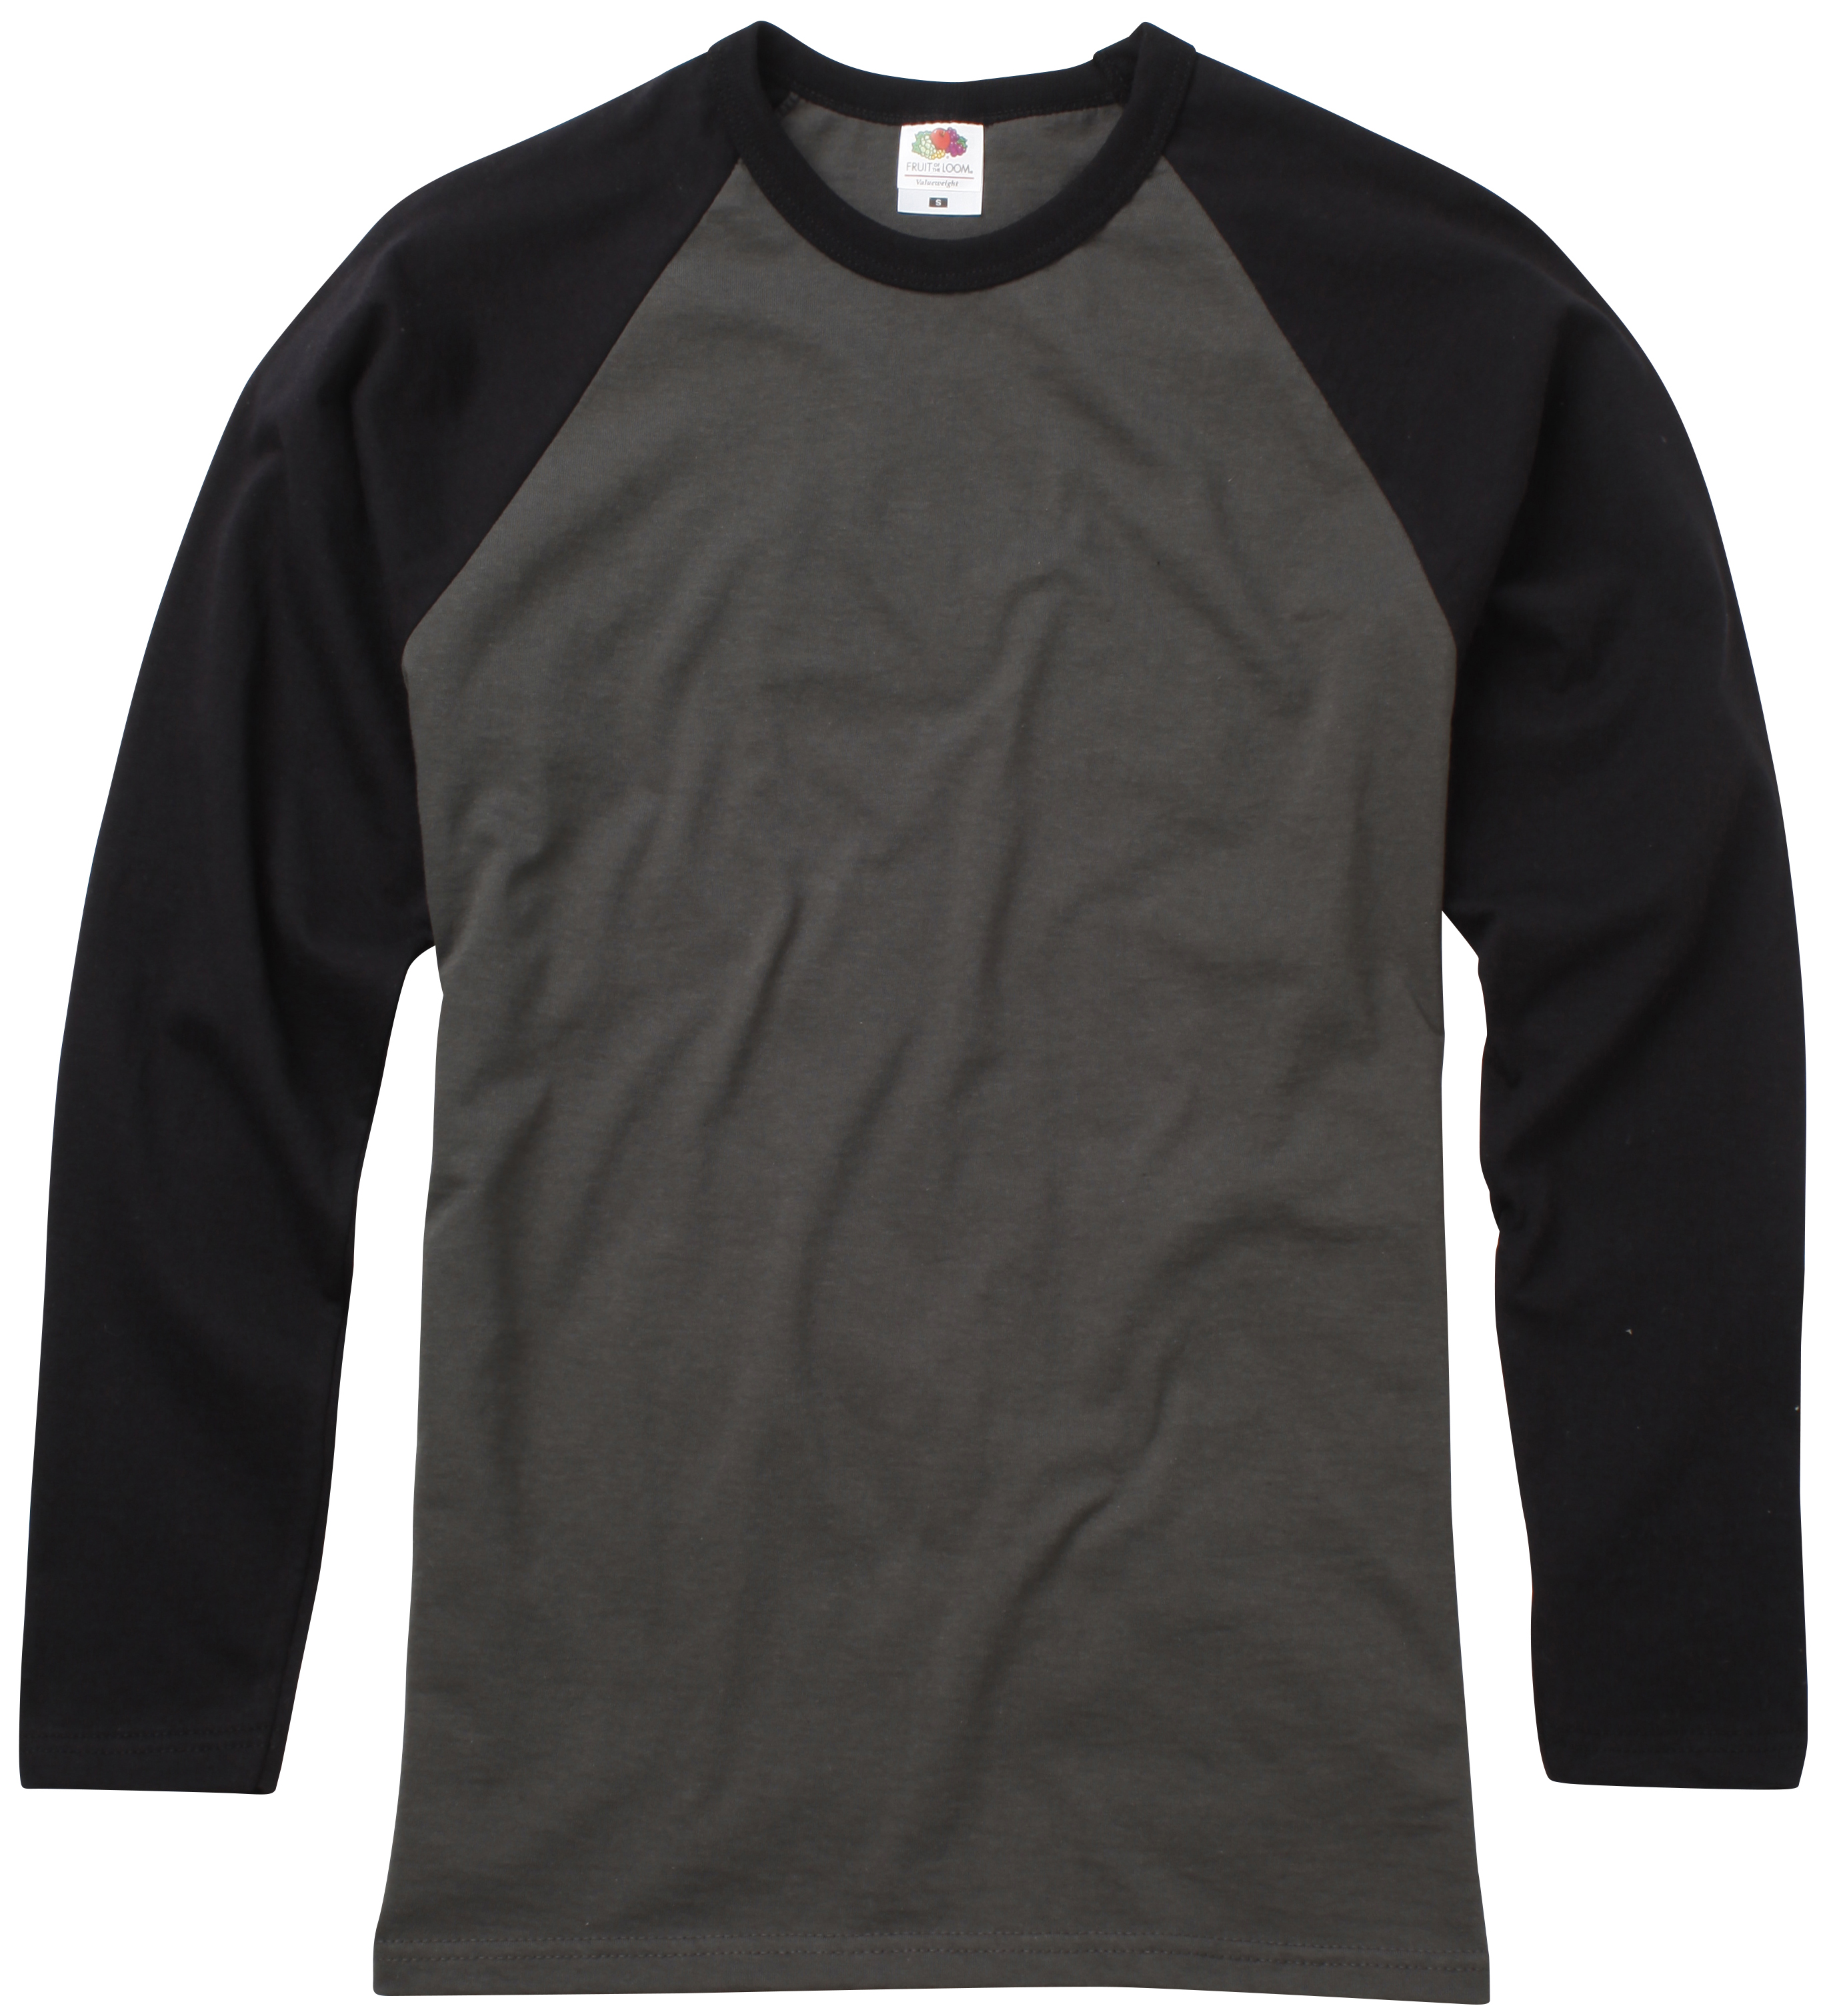 Black t shirt xxl -  Picture 12 Of 36